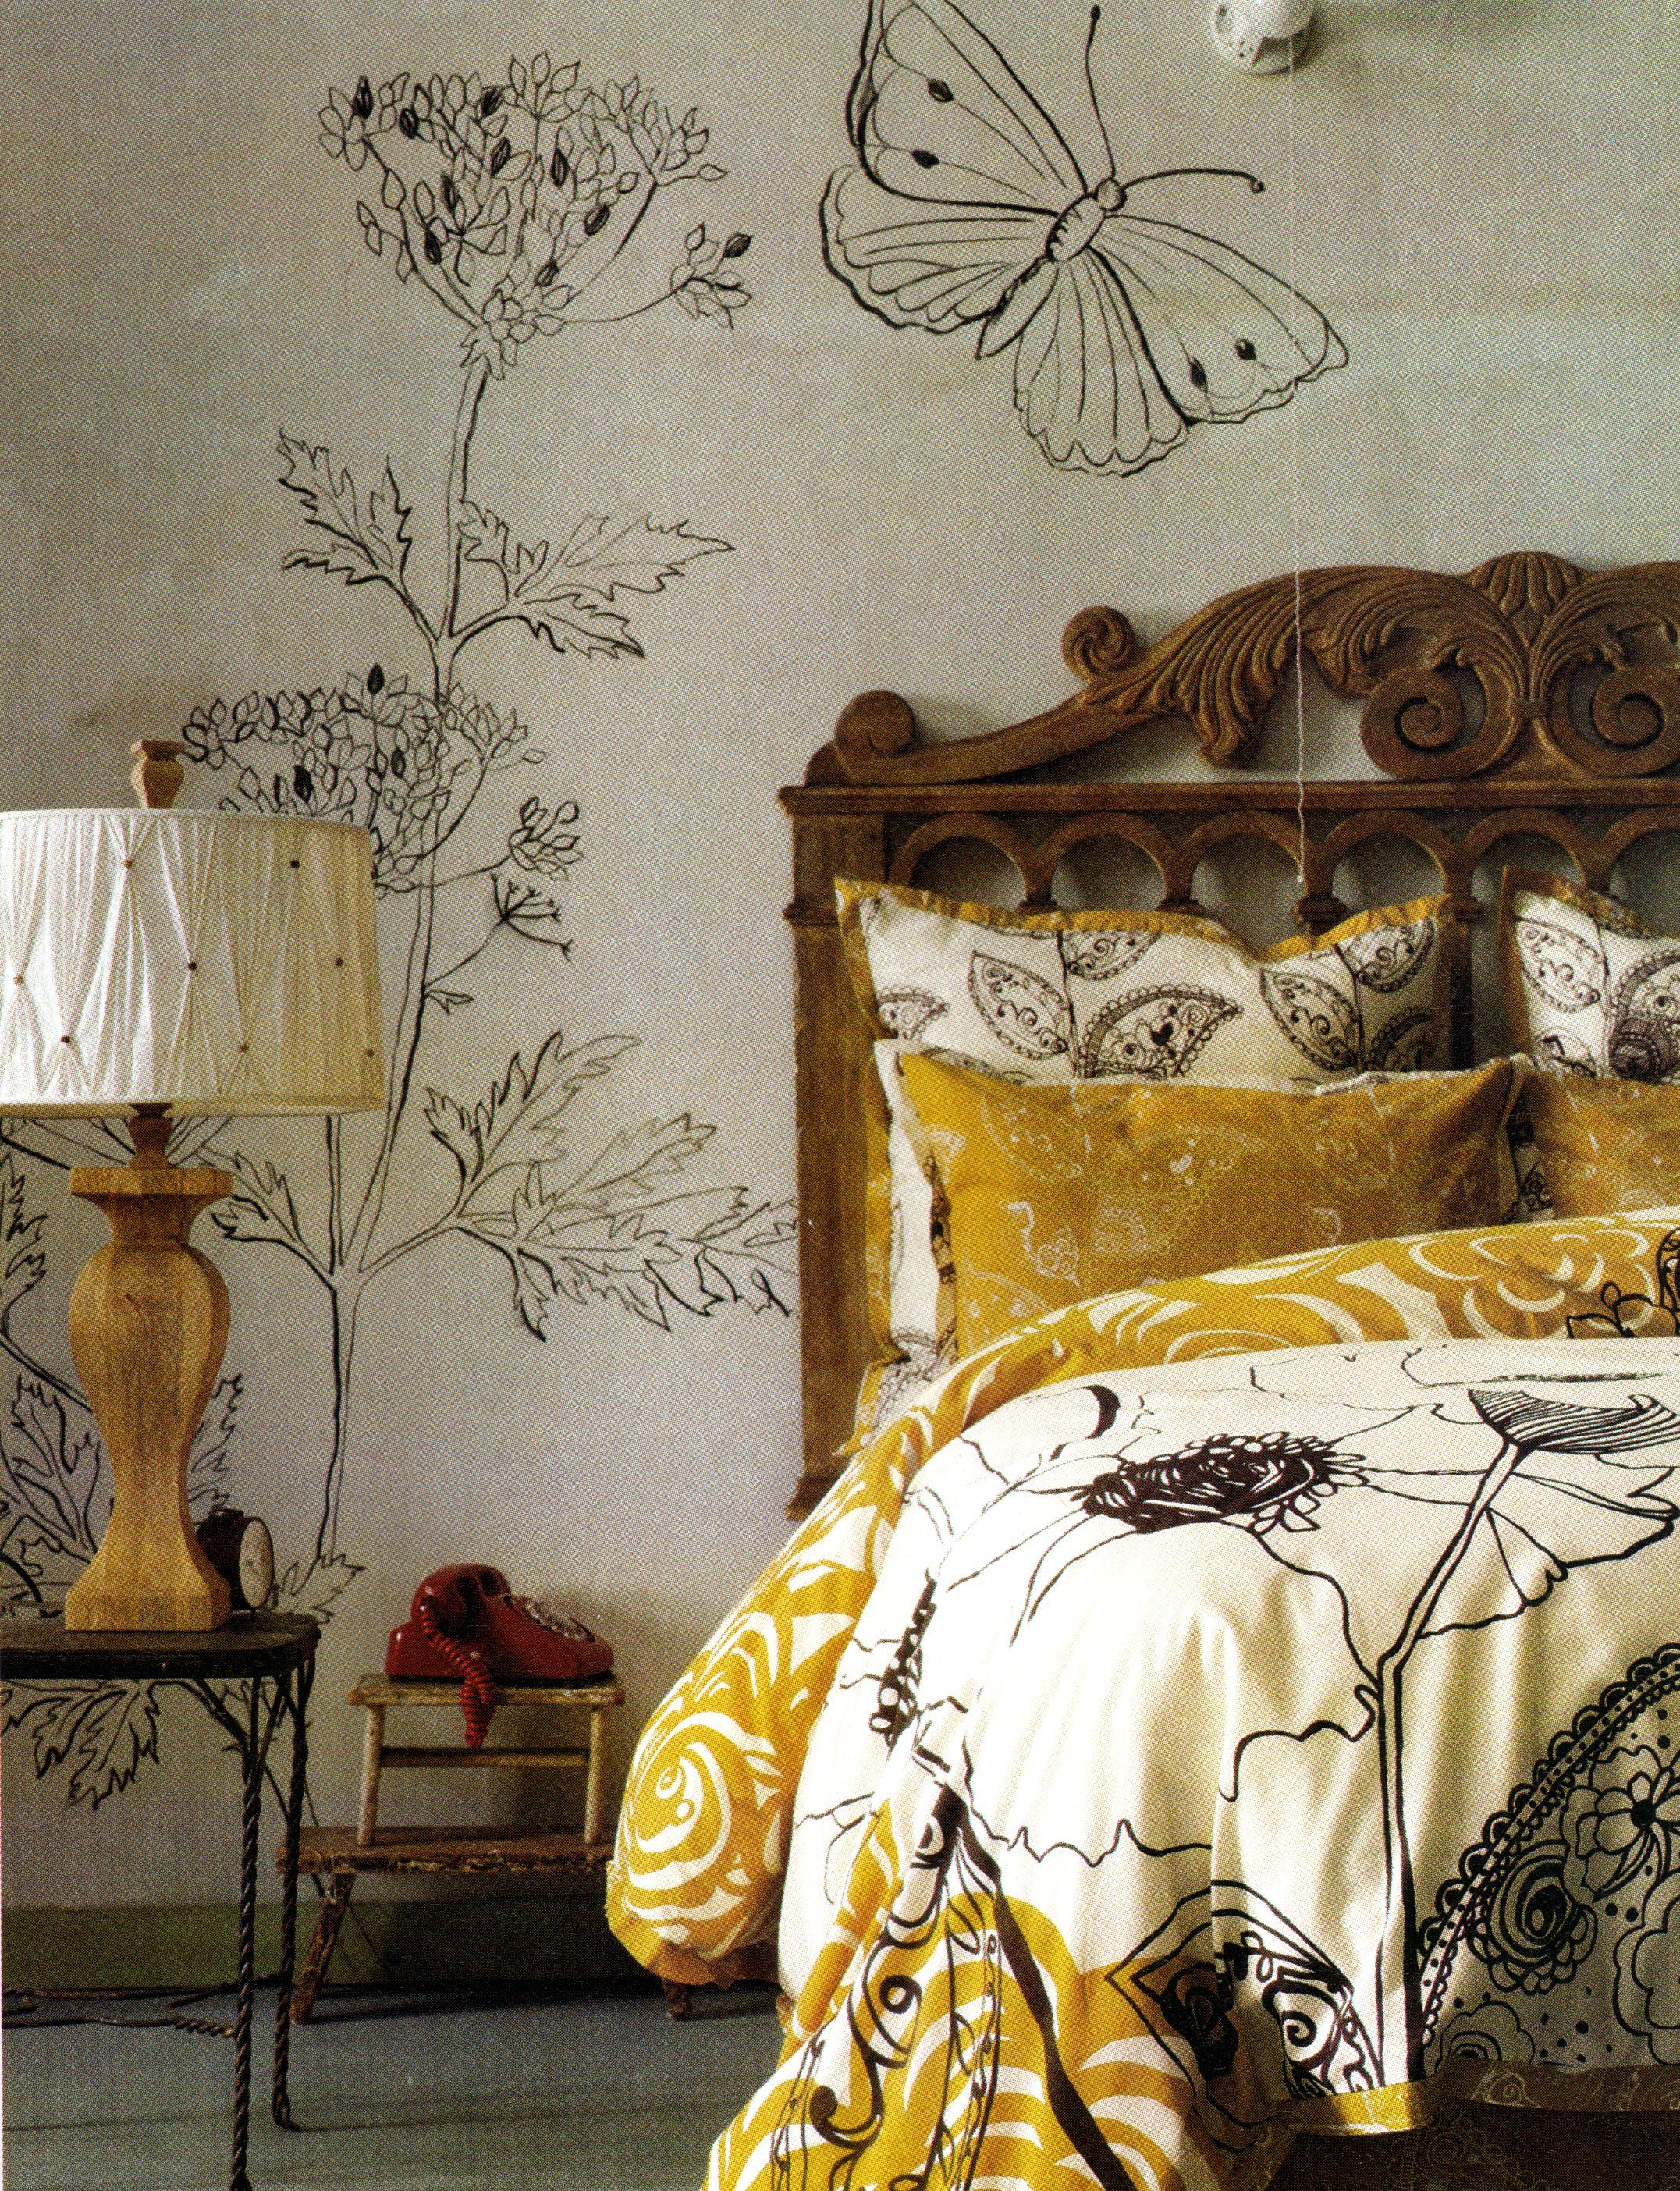 Wall drawings d e c o r pinterest stylists photographers and